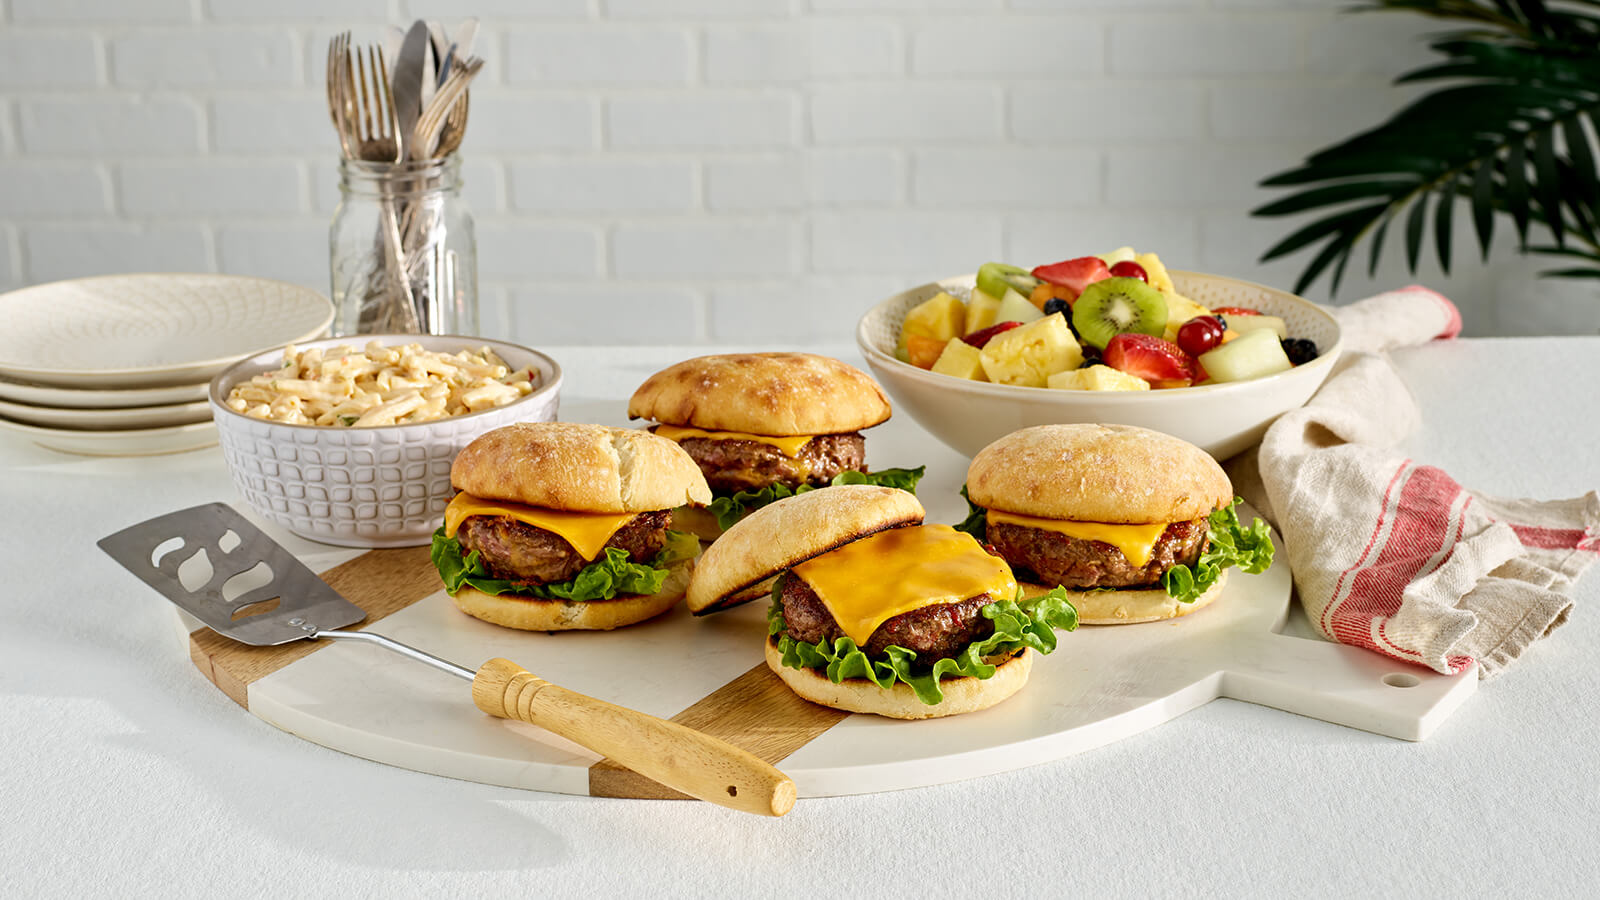 The Fresh Market Gourmet Burgers with Deli Salad and Fruit